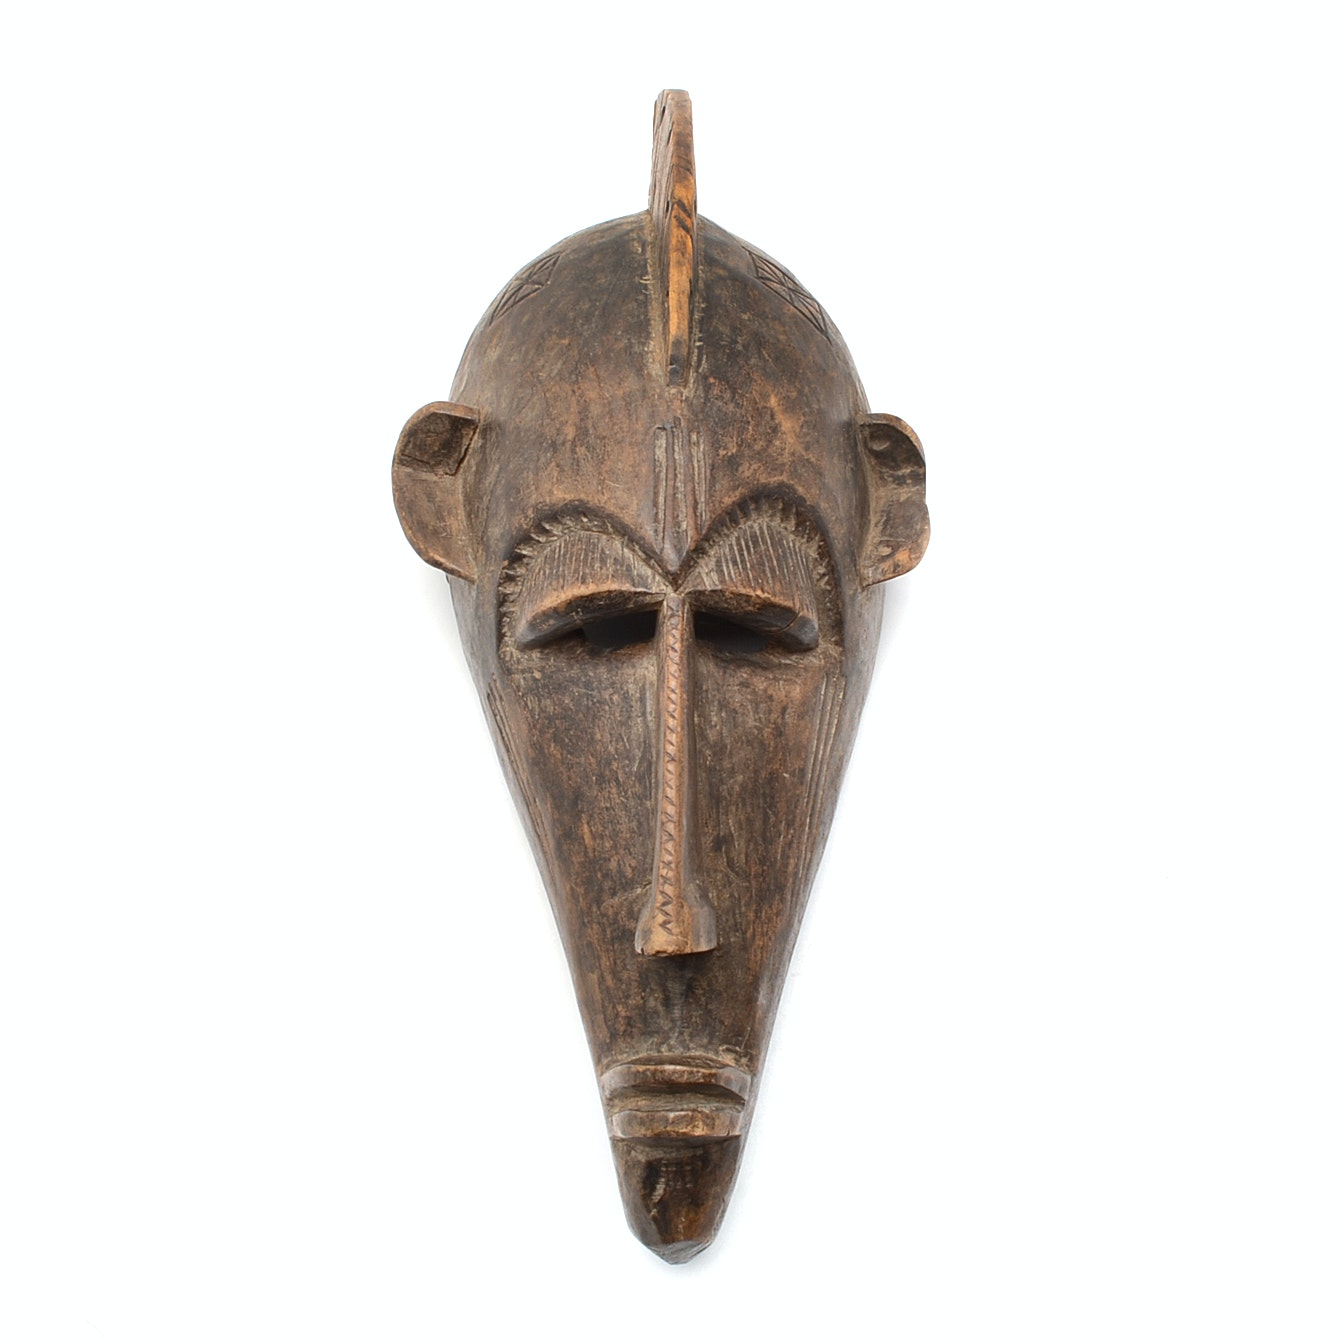 Early 20th Century Bamana Kore Society Carved Wood Mask from Mali, Africa